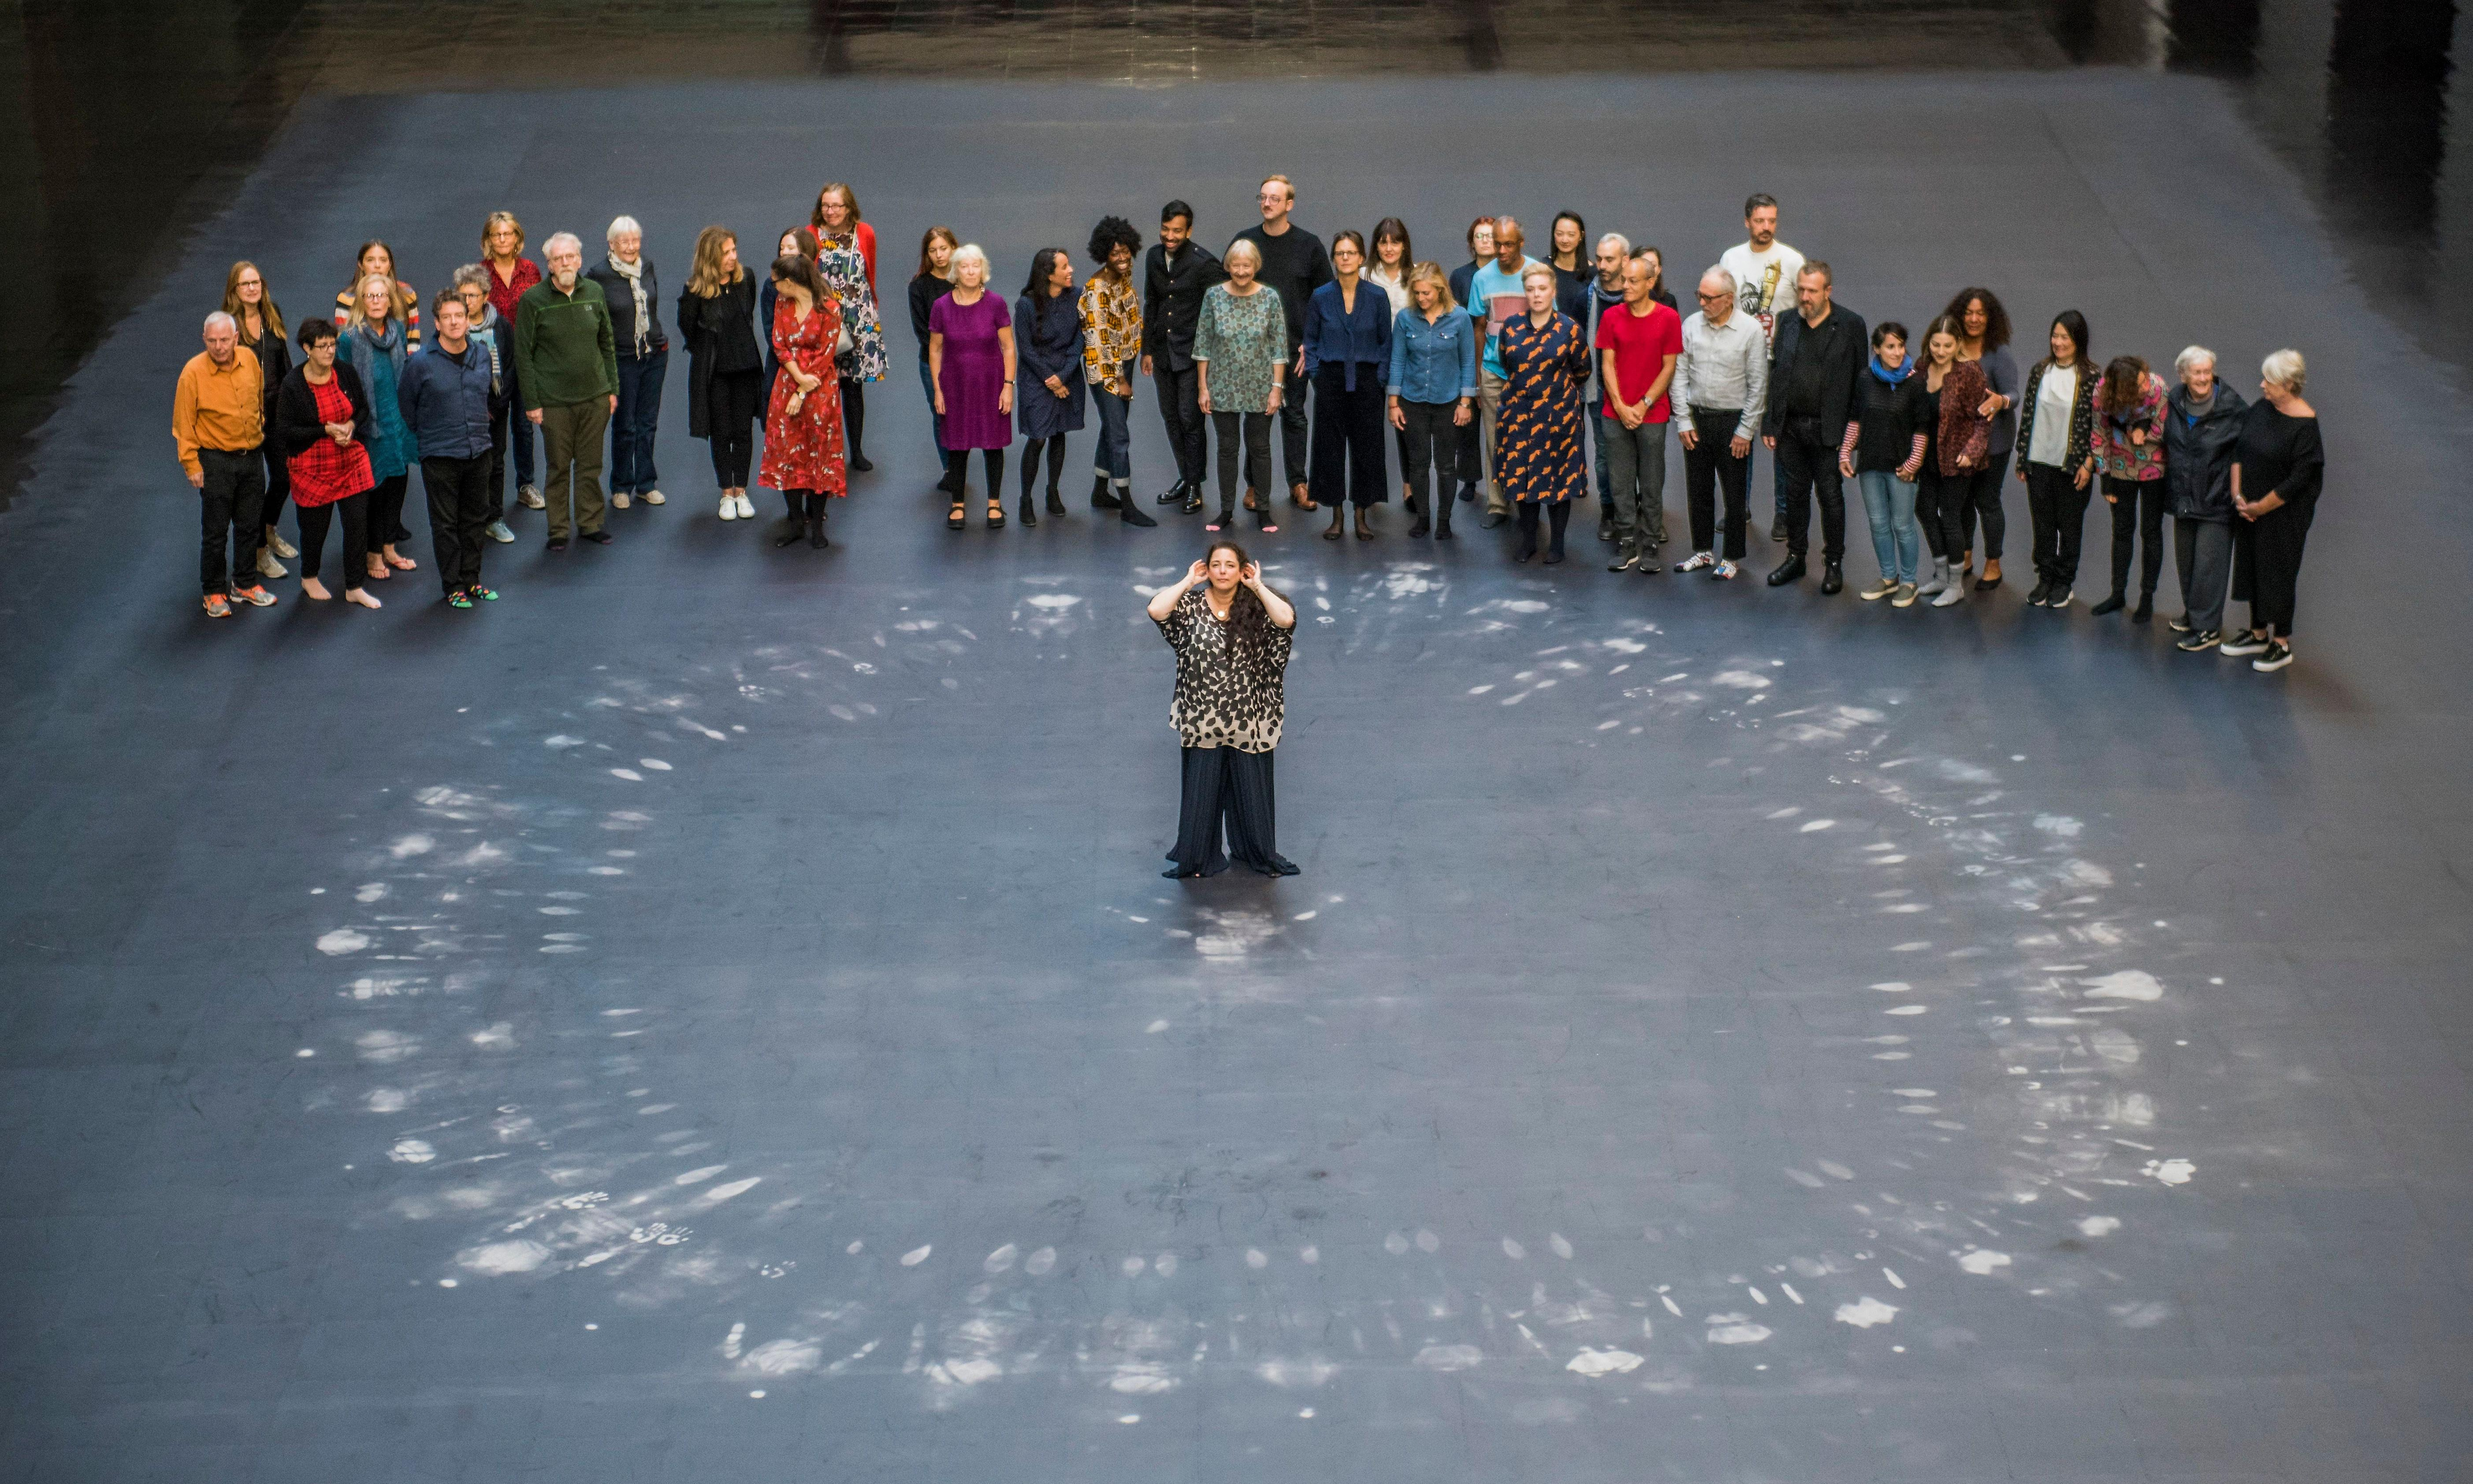 Tania Bruguera at Turbine Hall review – 'It didn't make me cry but it cleared the tubes'